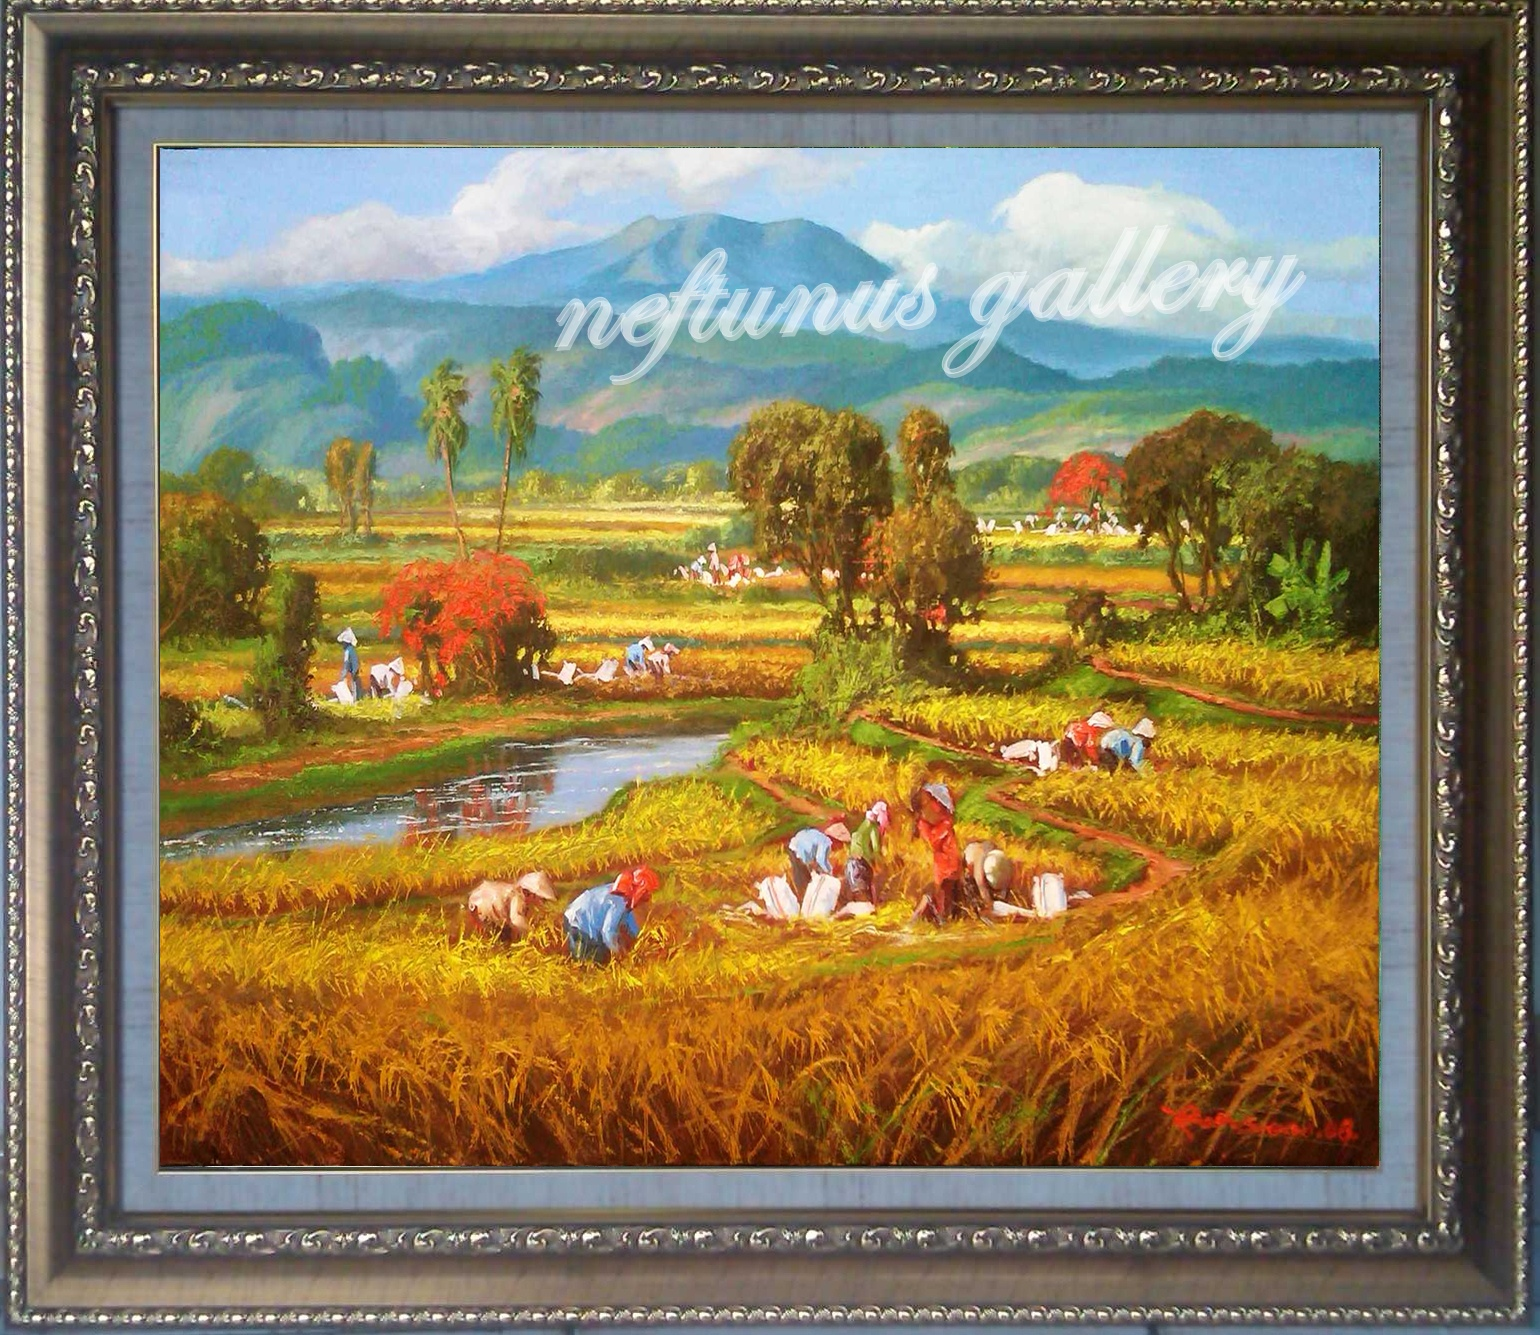 karya parsono 60x90cm,oil on canvas 2008 (SOLD OUT)